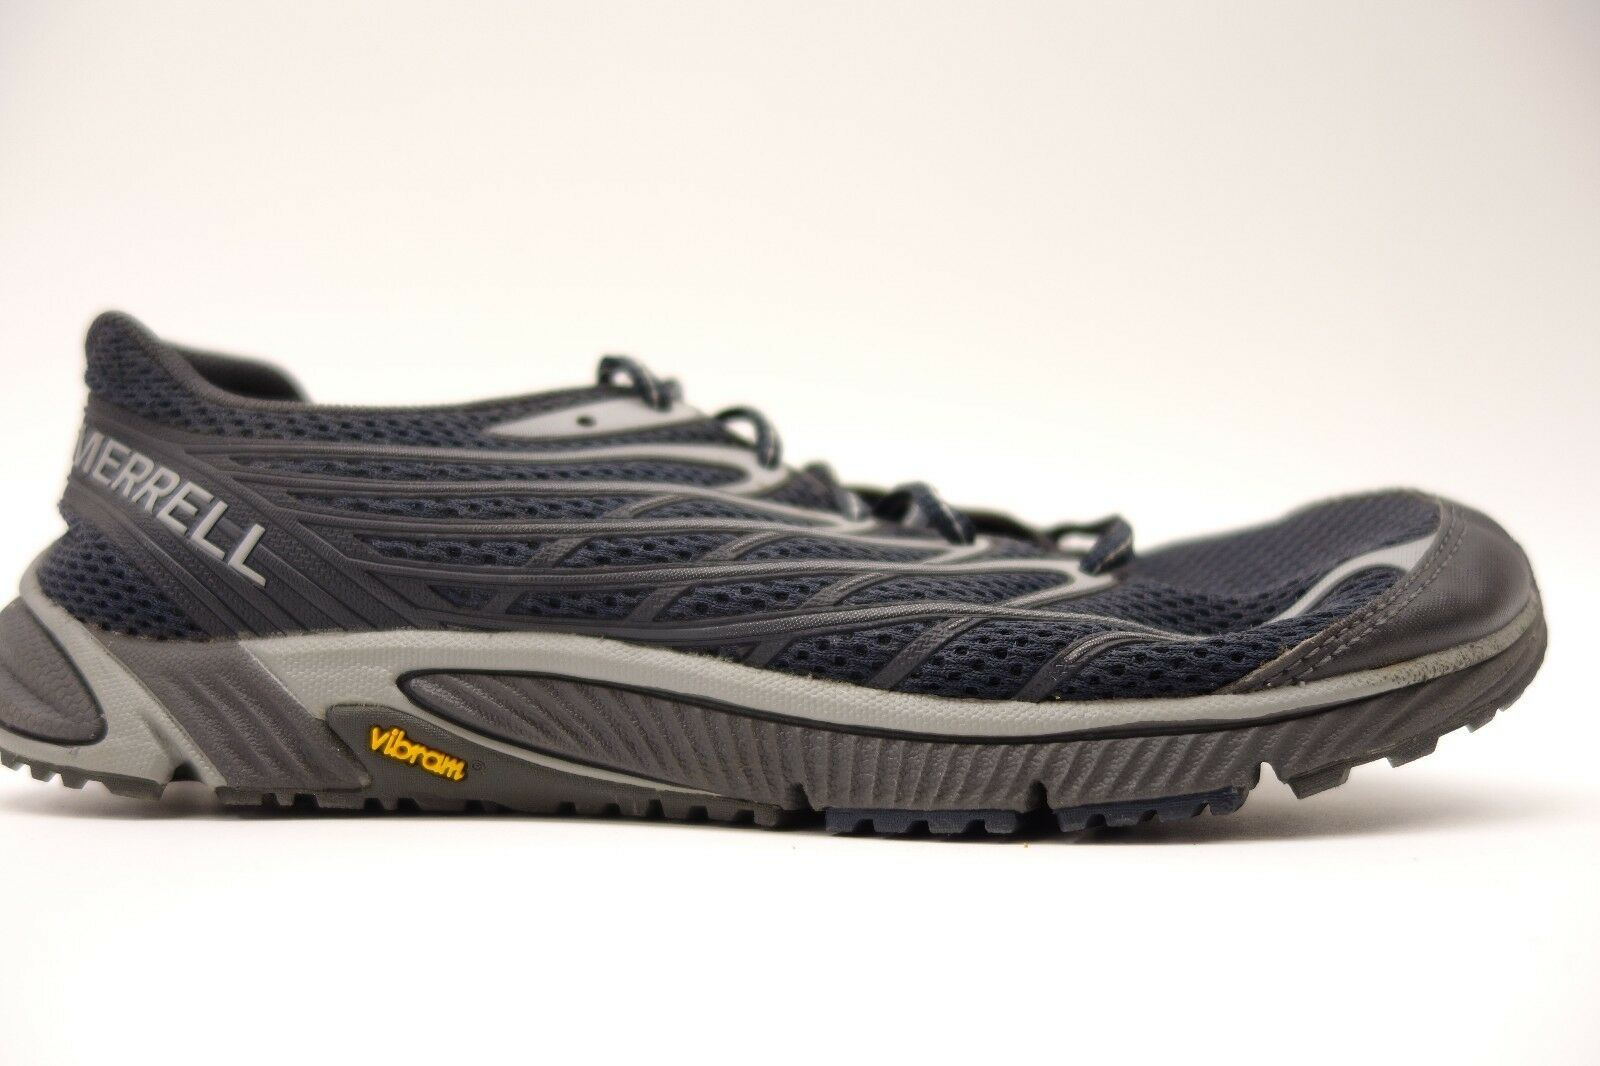 Merrell Mens Athletic Bare Access 4 Mesh Athletic Mens Support Hiking Trail Shoes Sz 8 5b7e9b